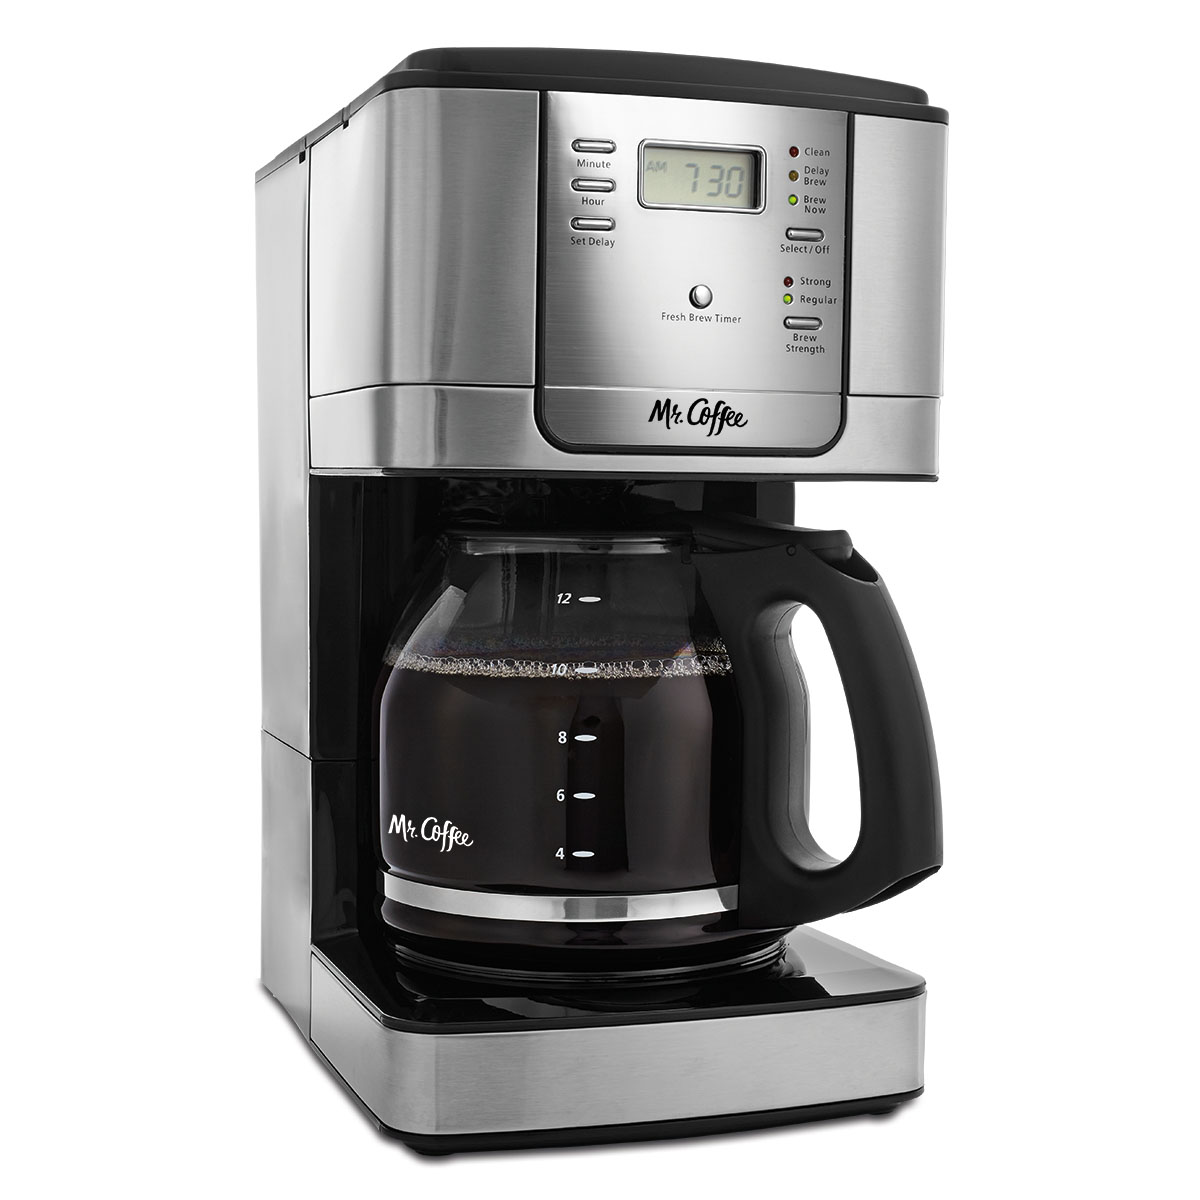 Mr Coffee Programmable Coffee Maker Cgx23 : Mr. Coffee Advanced Brew 12-Cup Programmable Coffee Maker JWX eBay